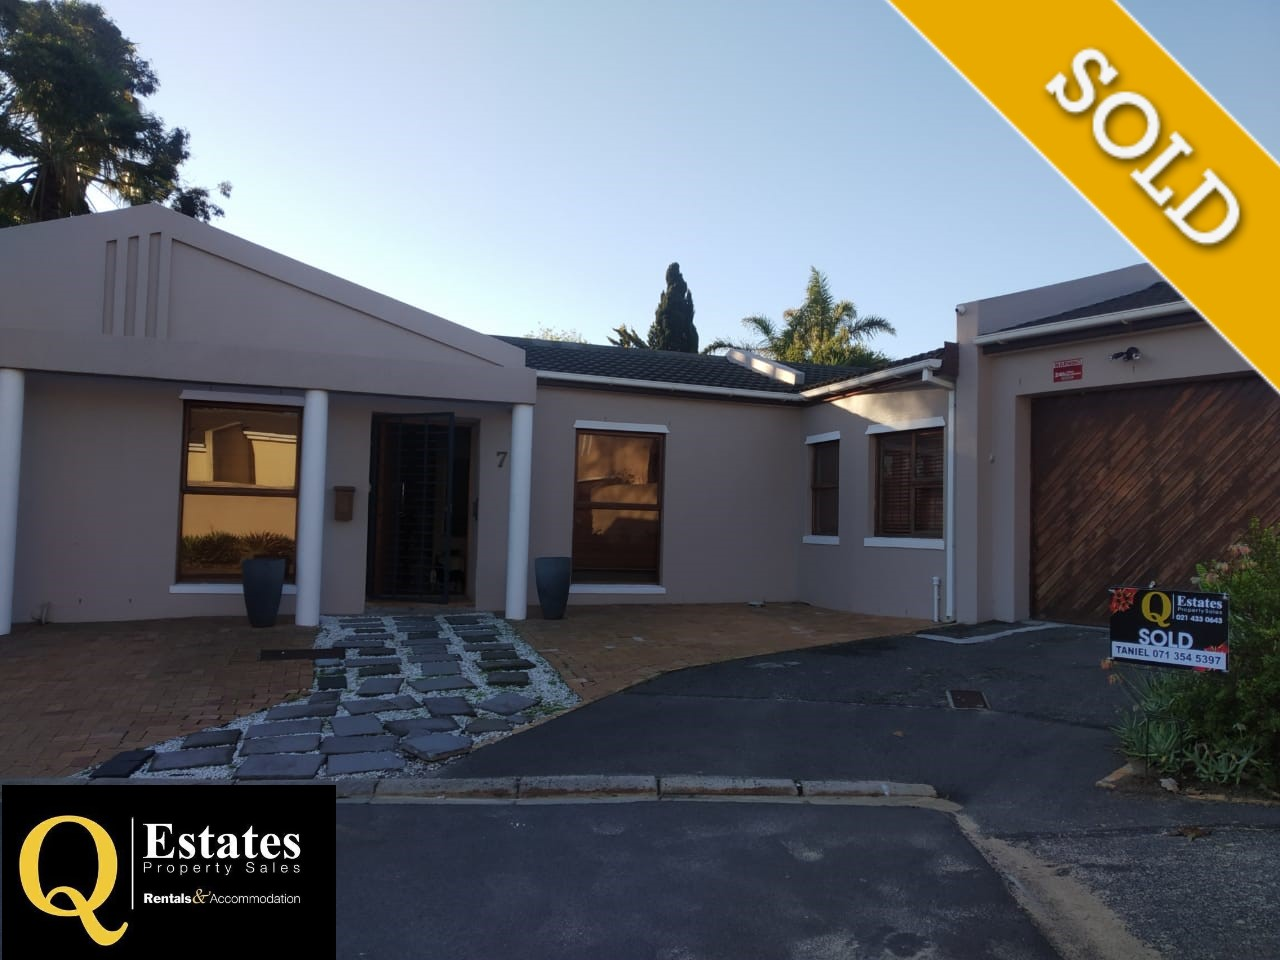 ###**The Latest property sold by our incredible team at Q Estates**